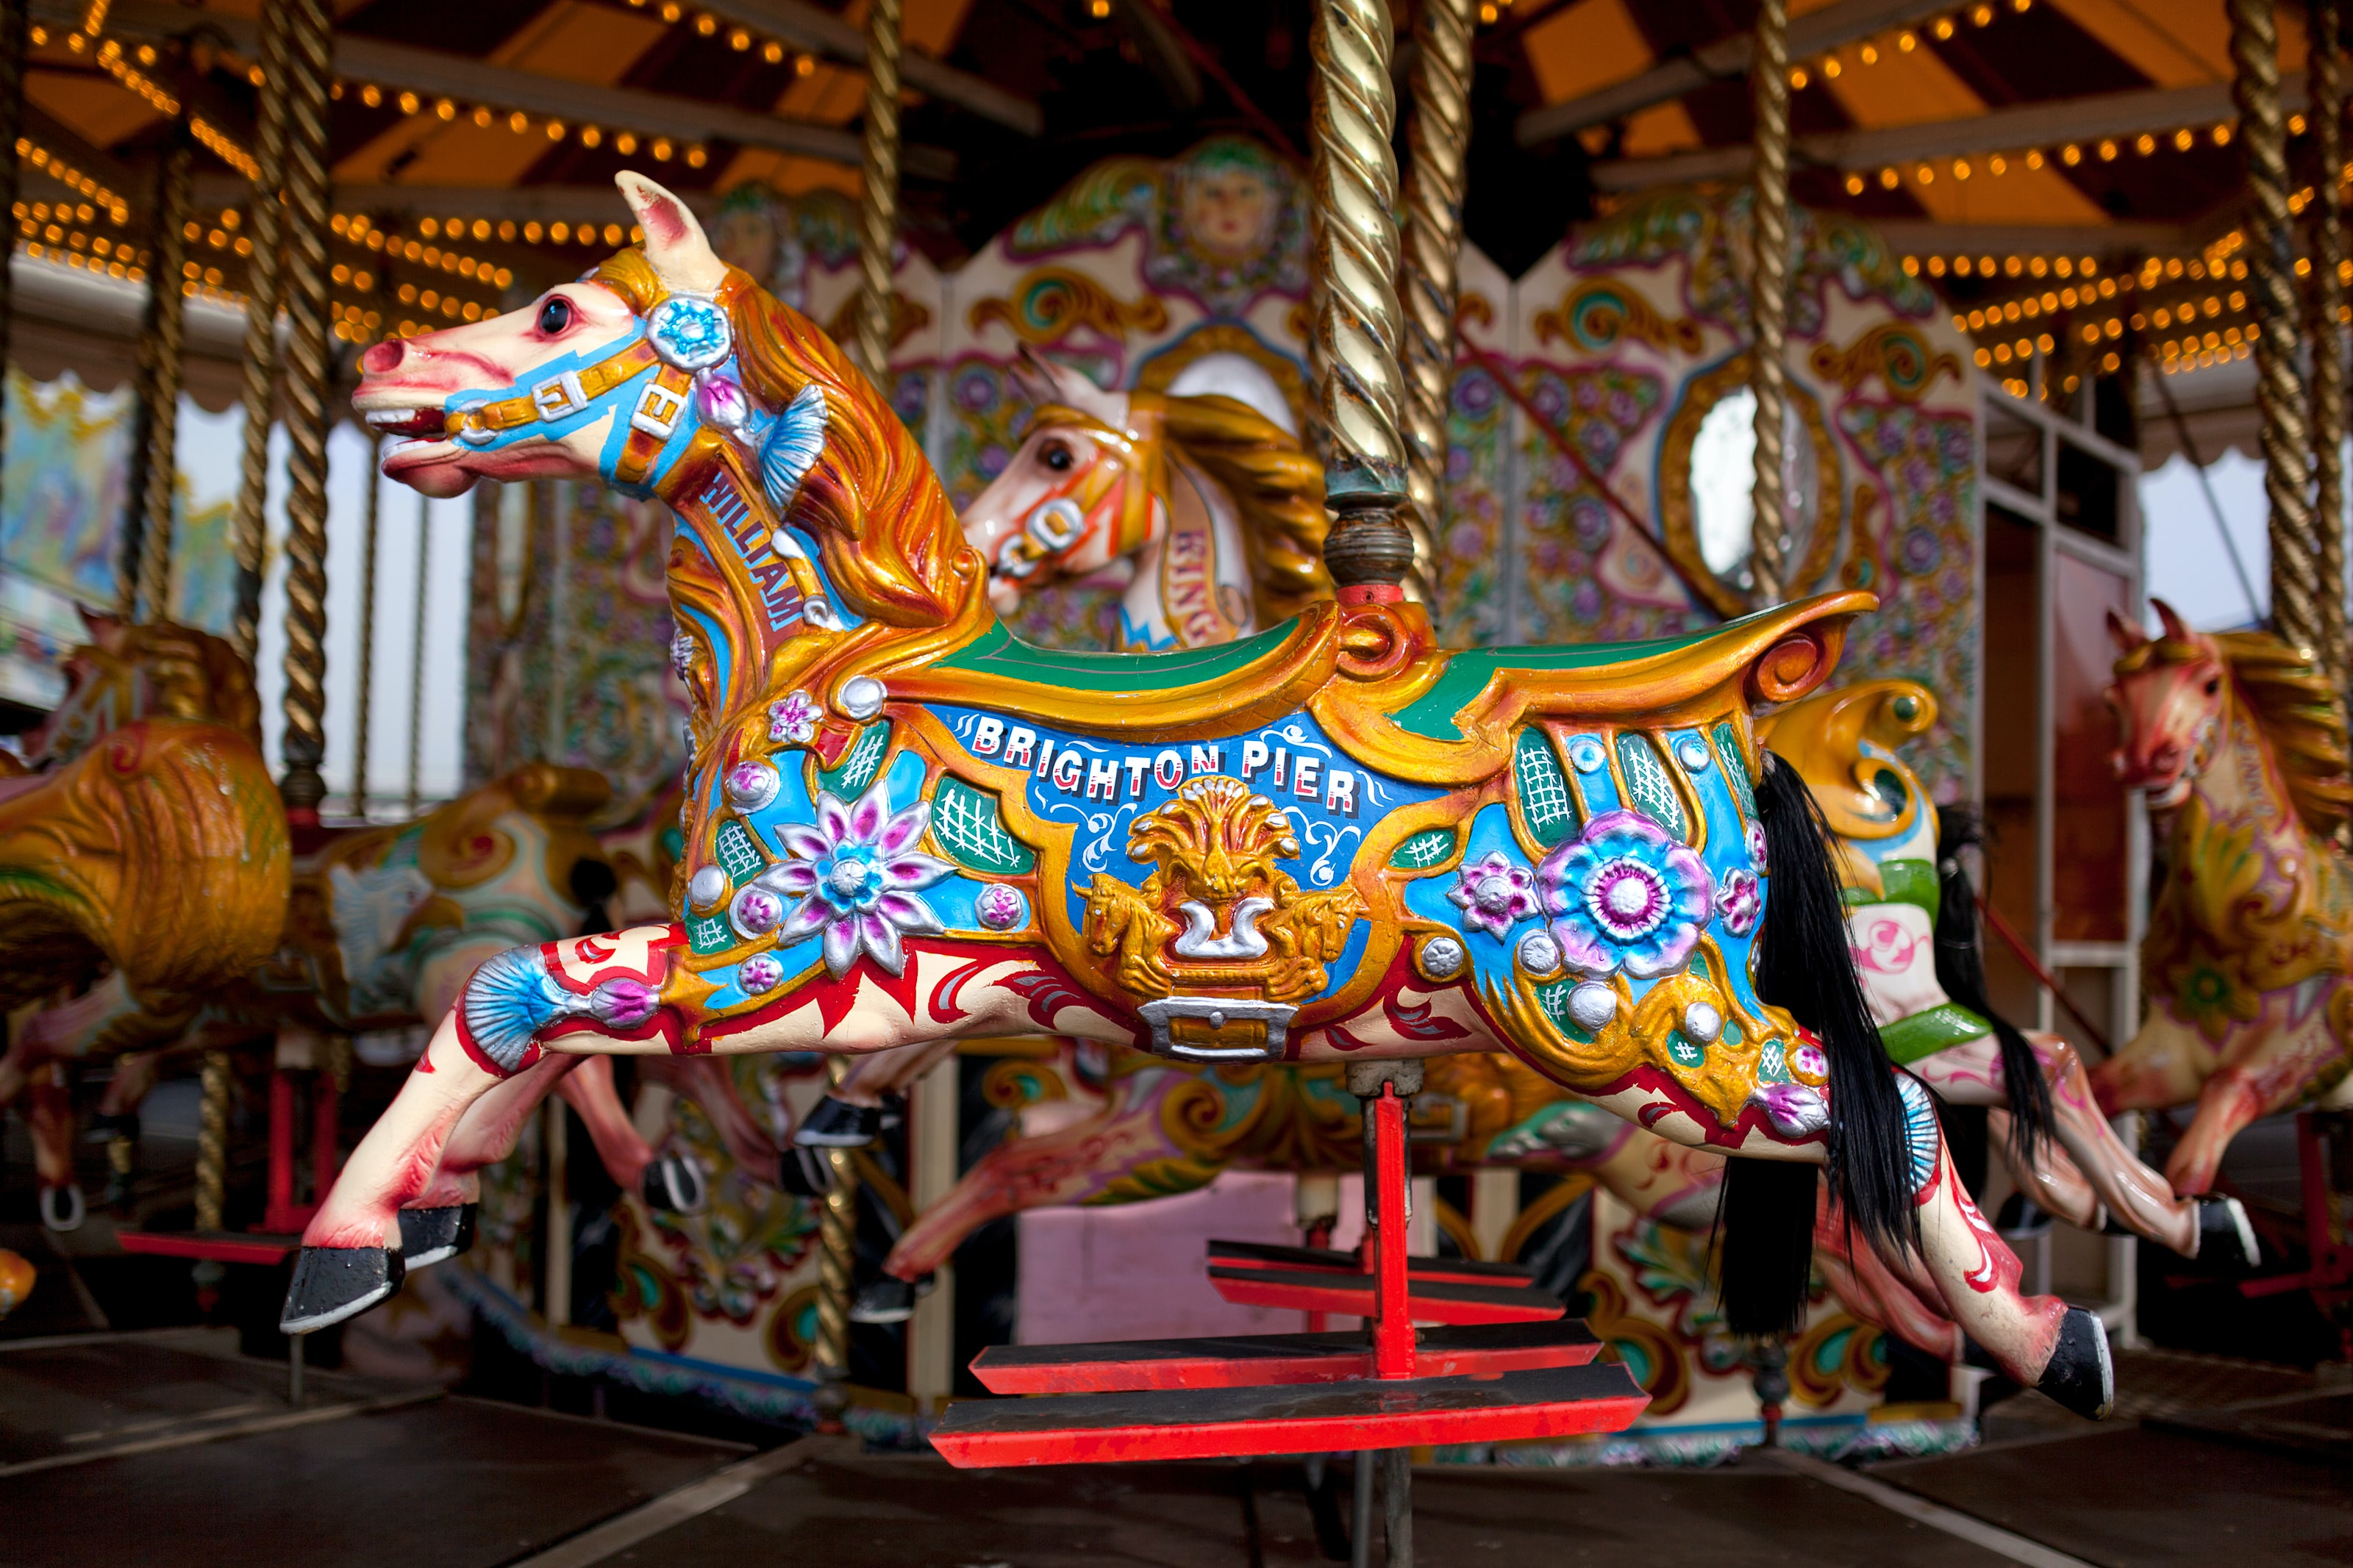 Carousel Horse Pictures Download Free Images On Unsplash